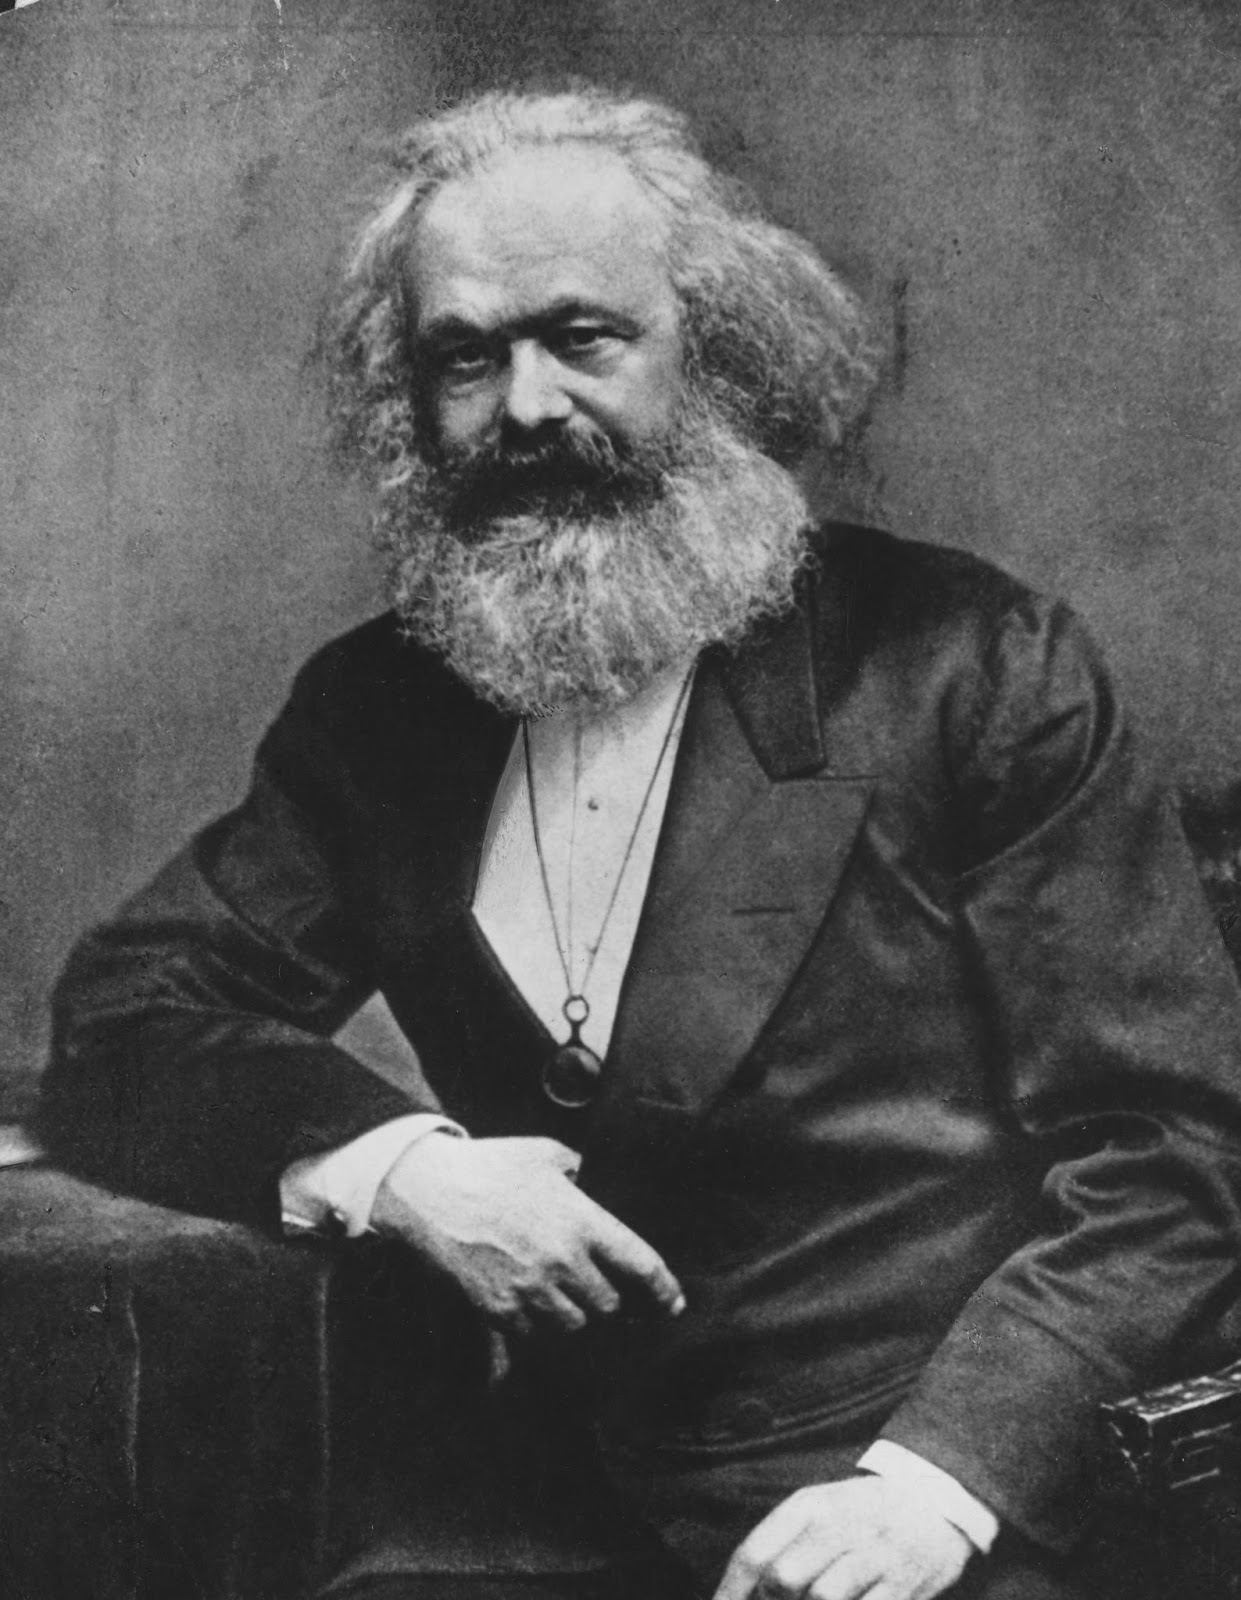 karl marx alienation of labor Karl marx's concept of alienation   tim pfefferle sorry, preview is currently unavailable you can download the paper by clicking the button above alienation (marx) : the process whereby the worker is made to feel foreign to the products of his/her own labor the creation of commodities need.